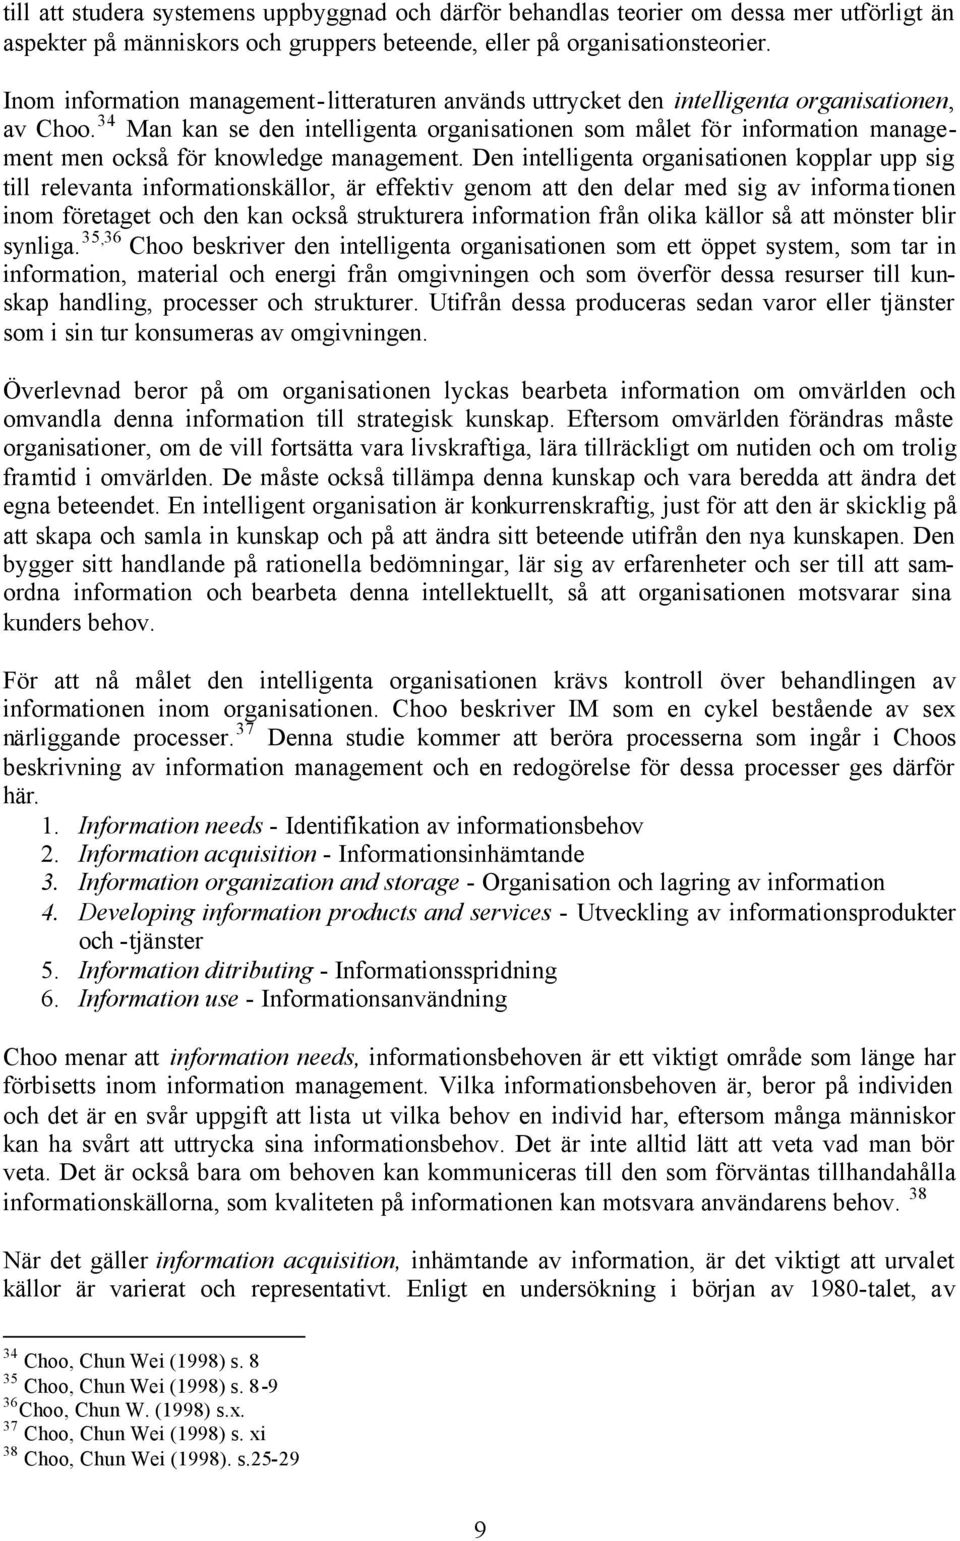 34 Man kan se den intelligenta organisationen som målet för information management men också för knowledge management.